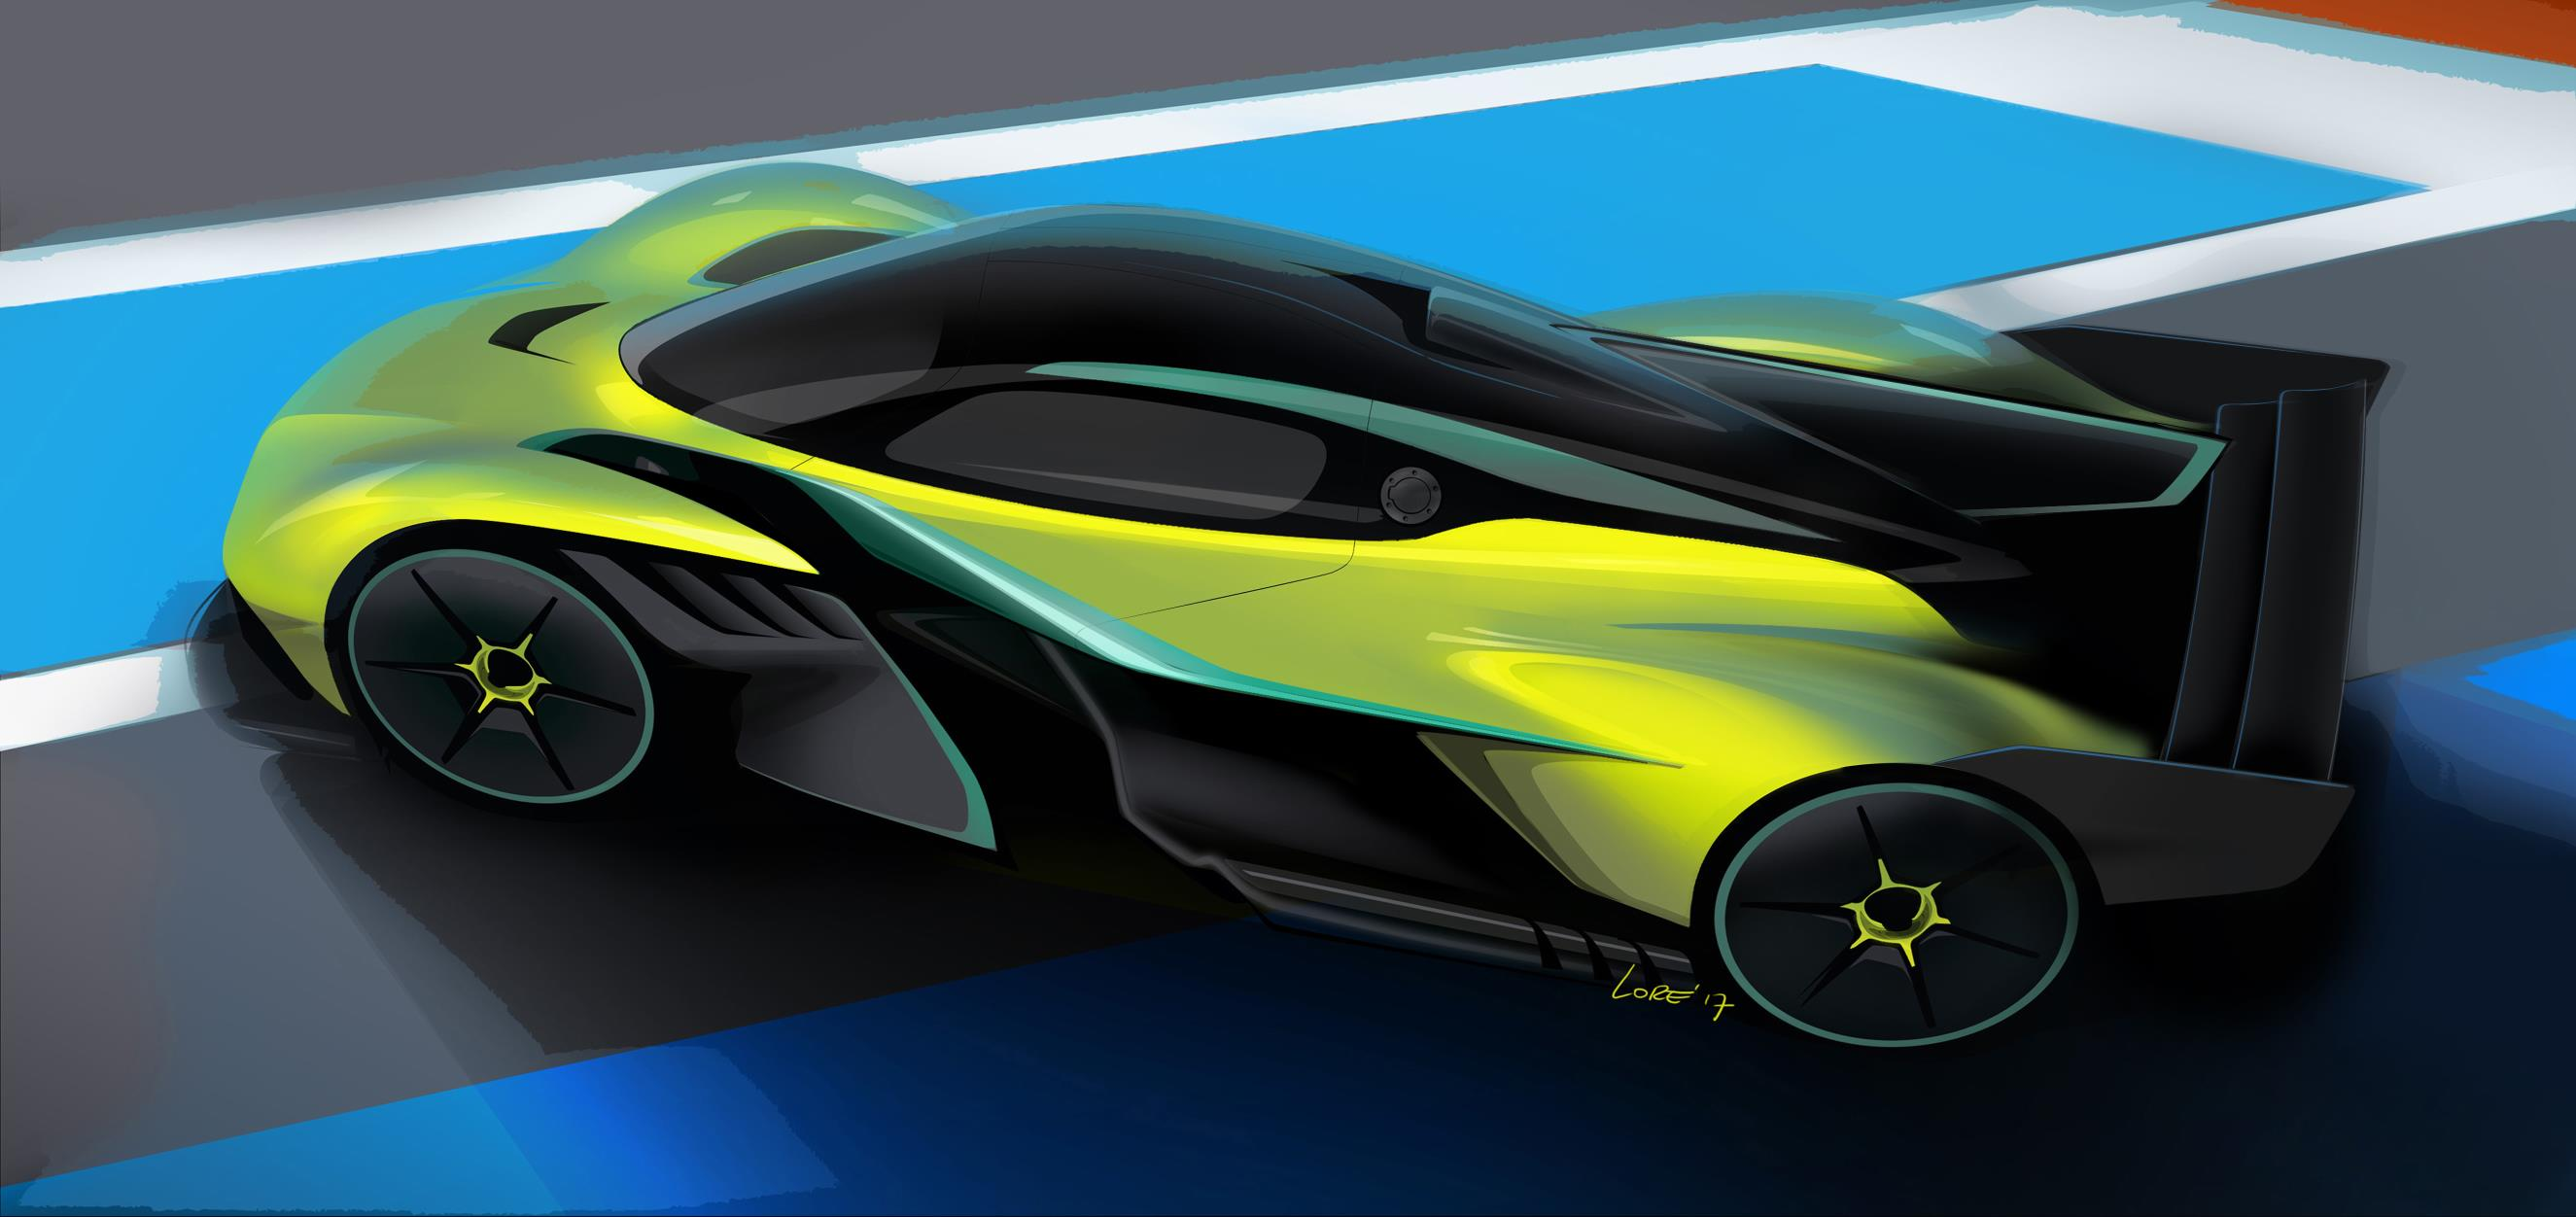 Aston Martin Valkyrie Amr Pro Redefining The Limits Of Performance Endurance Info English Spoken